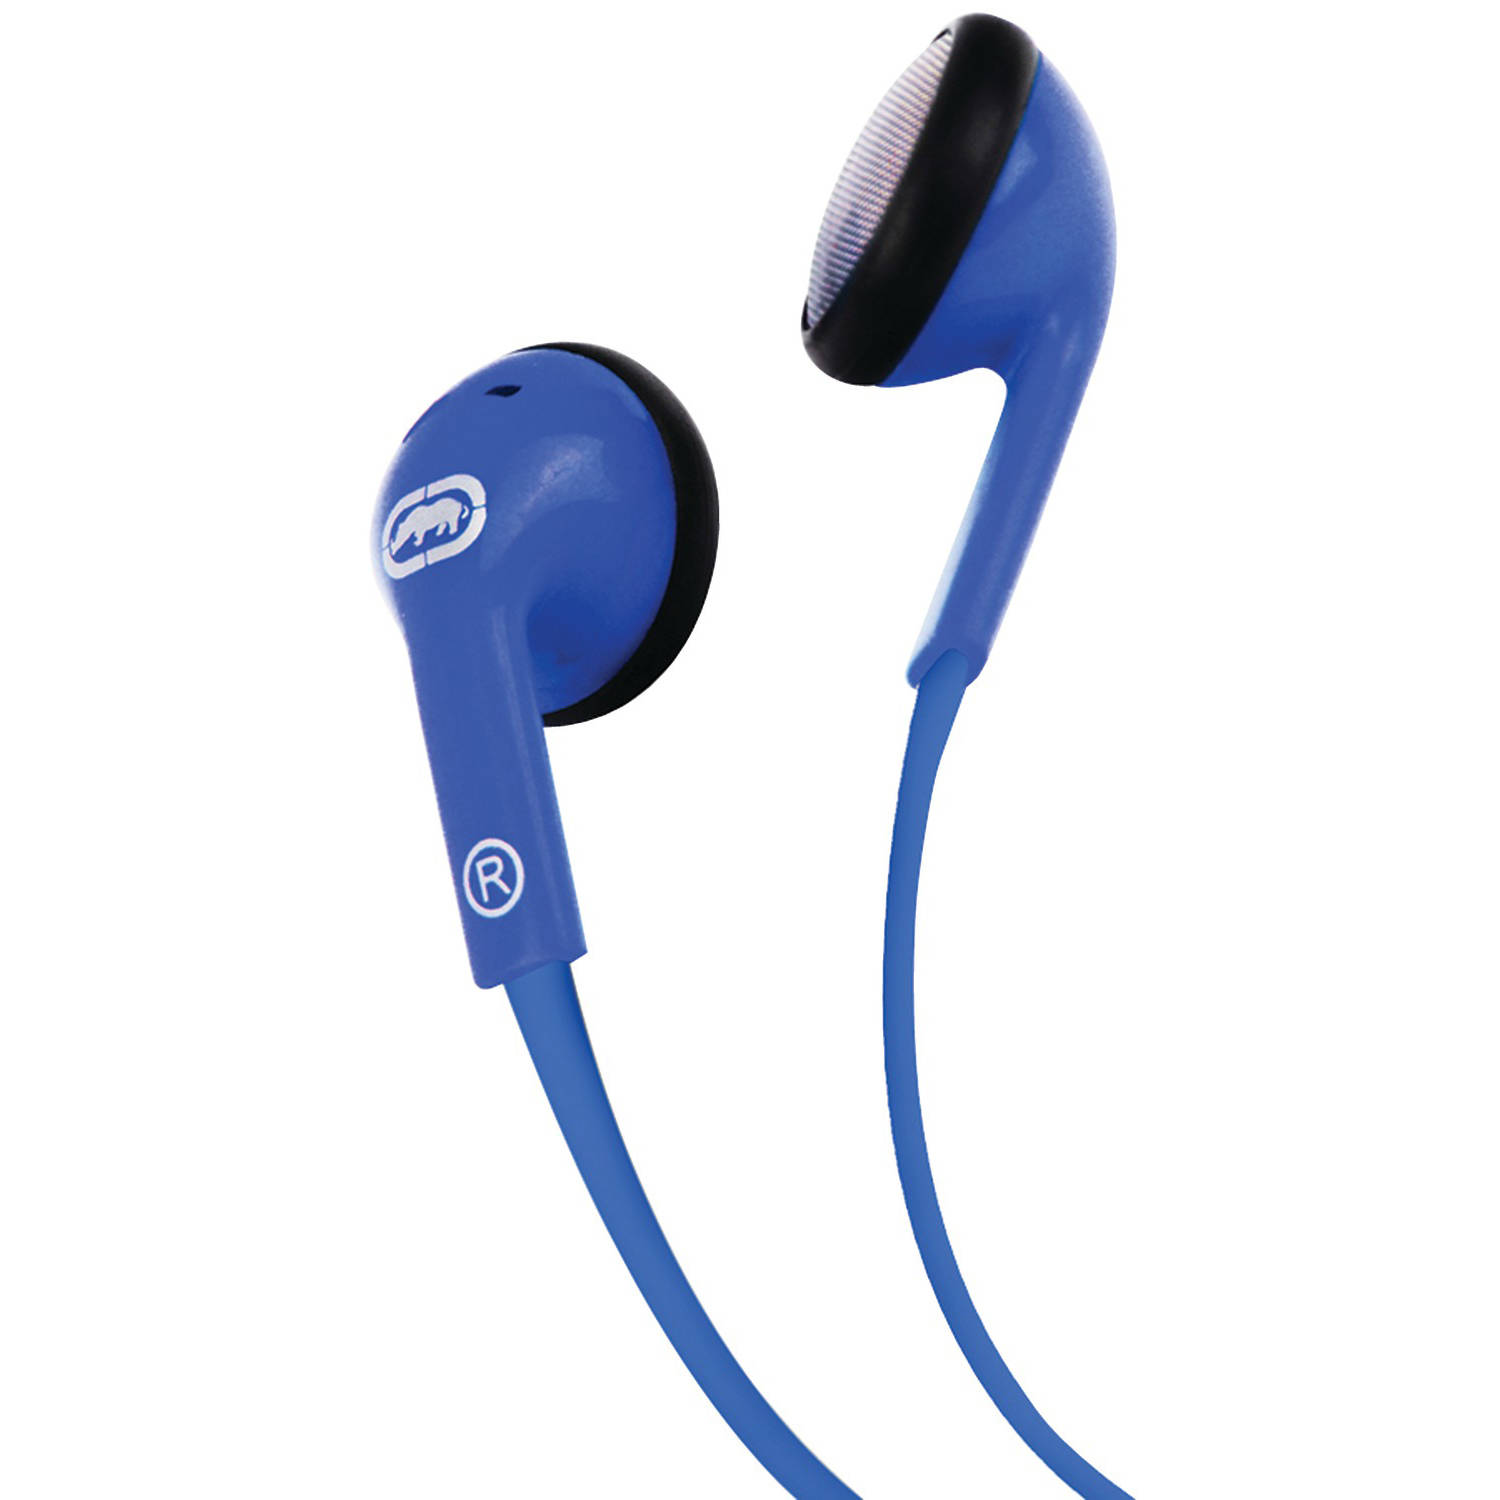 Ecko Unlimited Eku-dme-bl Dome Earbuds with Microphone (Blue)